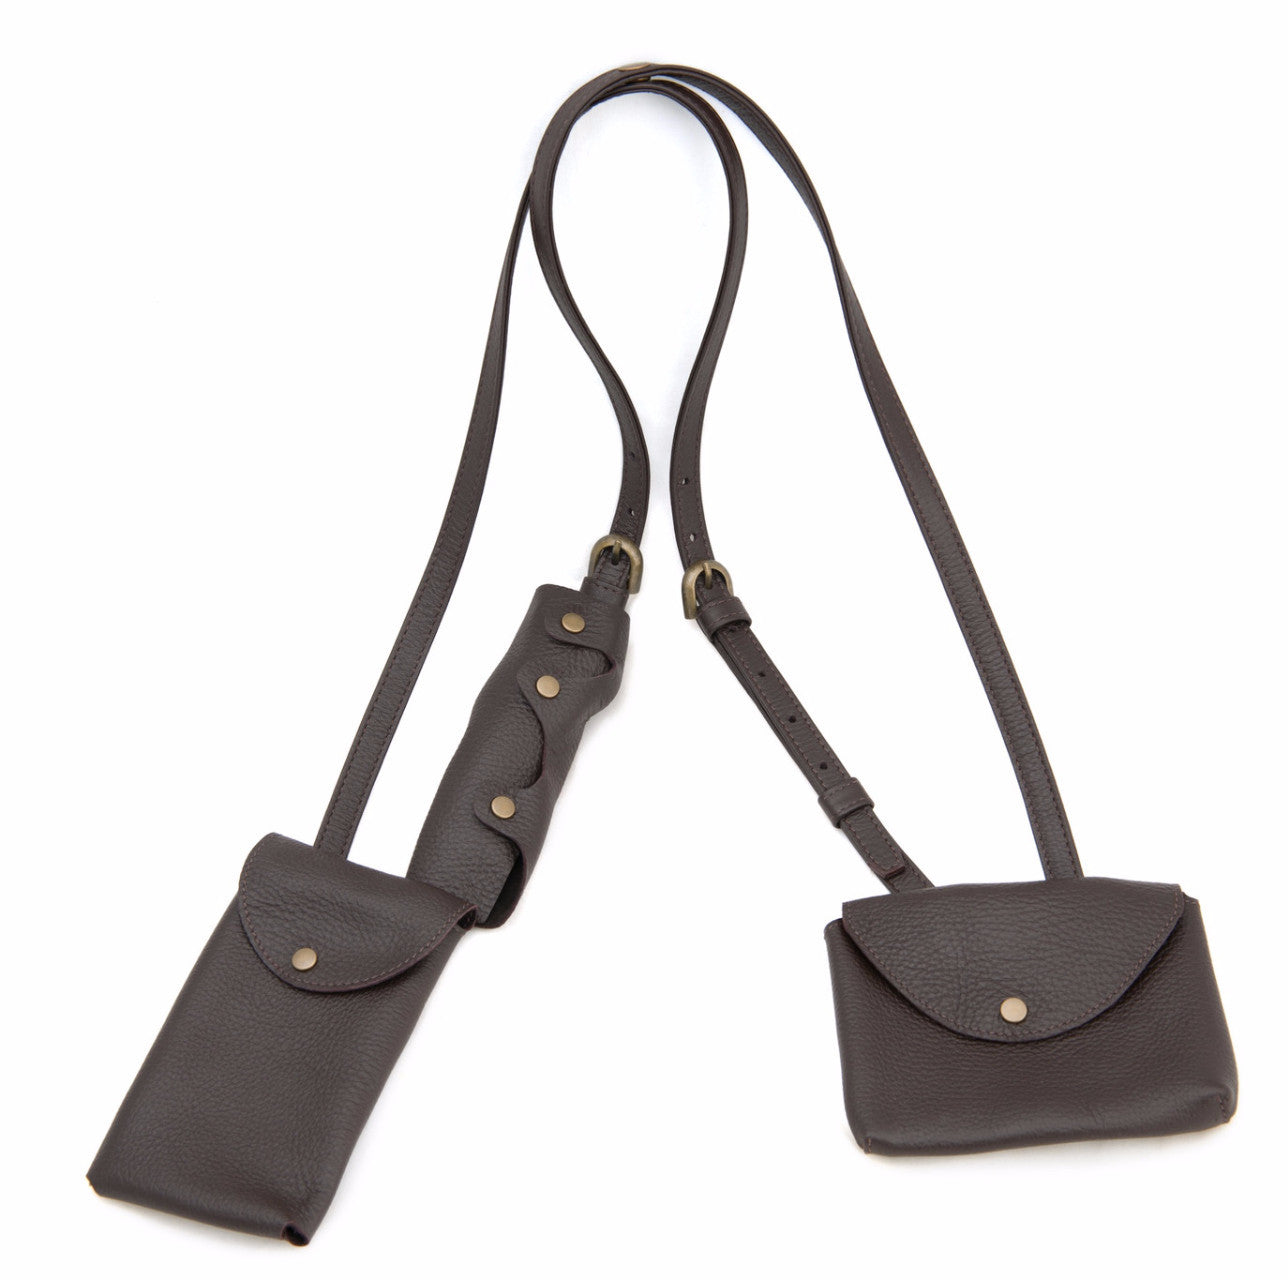 lowest price c70a1 0647e Dark Chocolate Brown Leather Cell Phone Shoulder Holster - Molly Shaheen